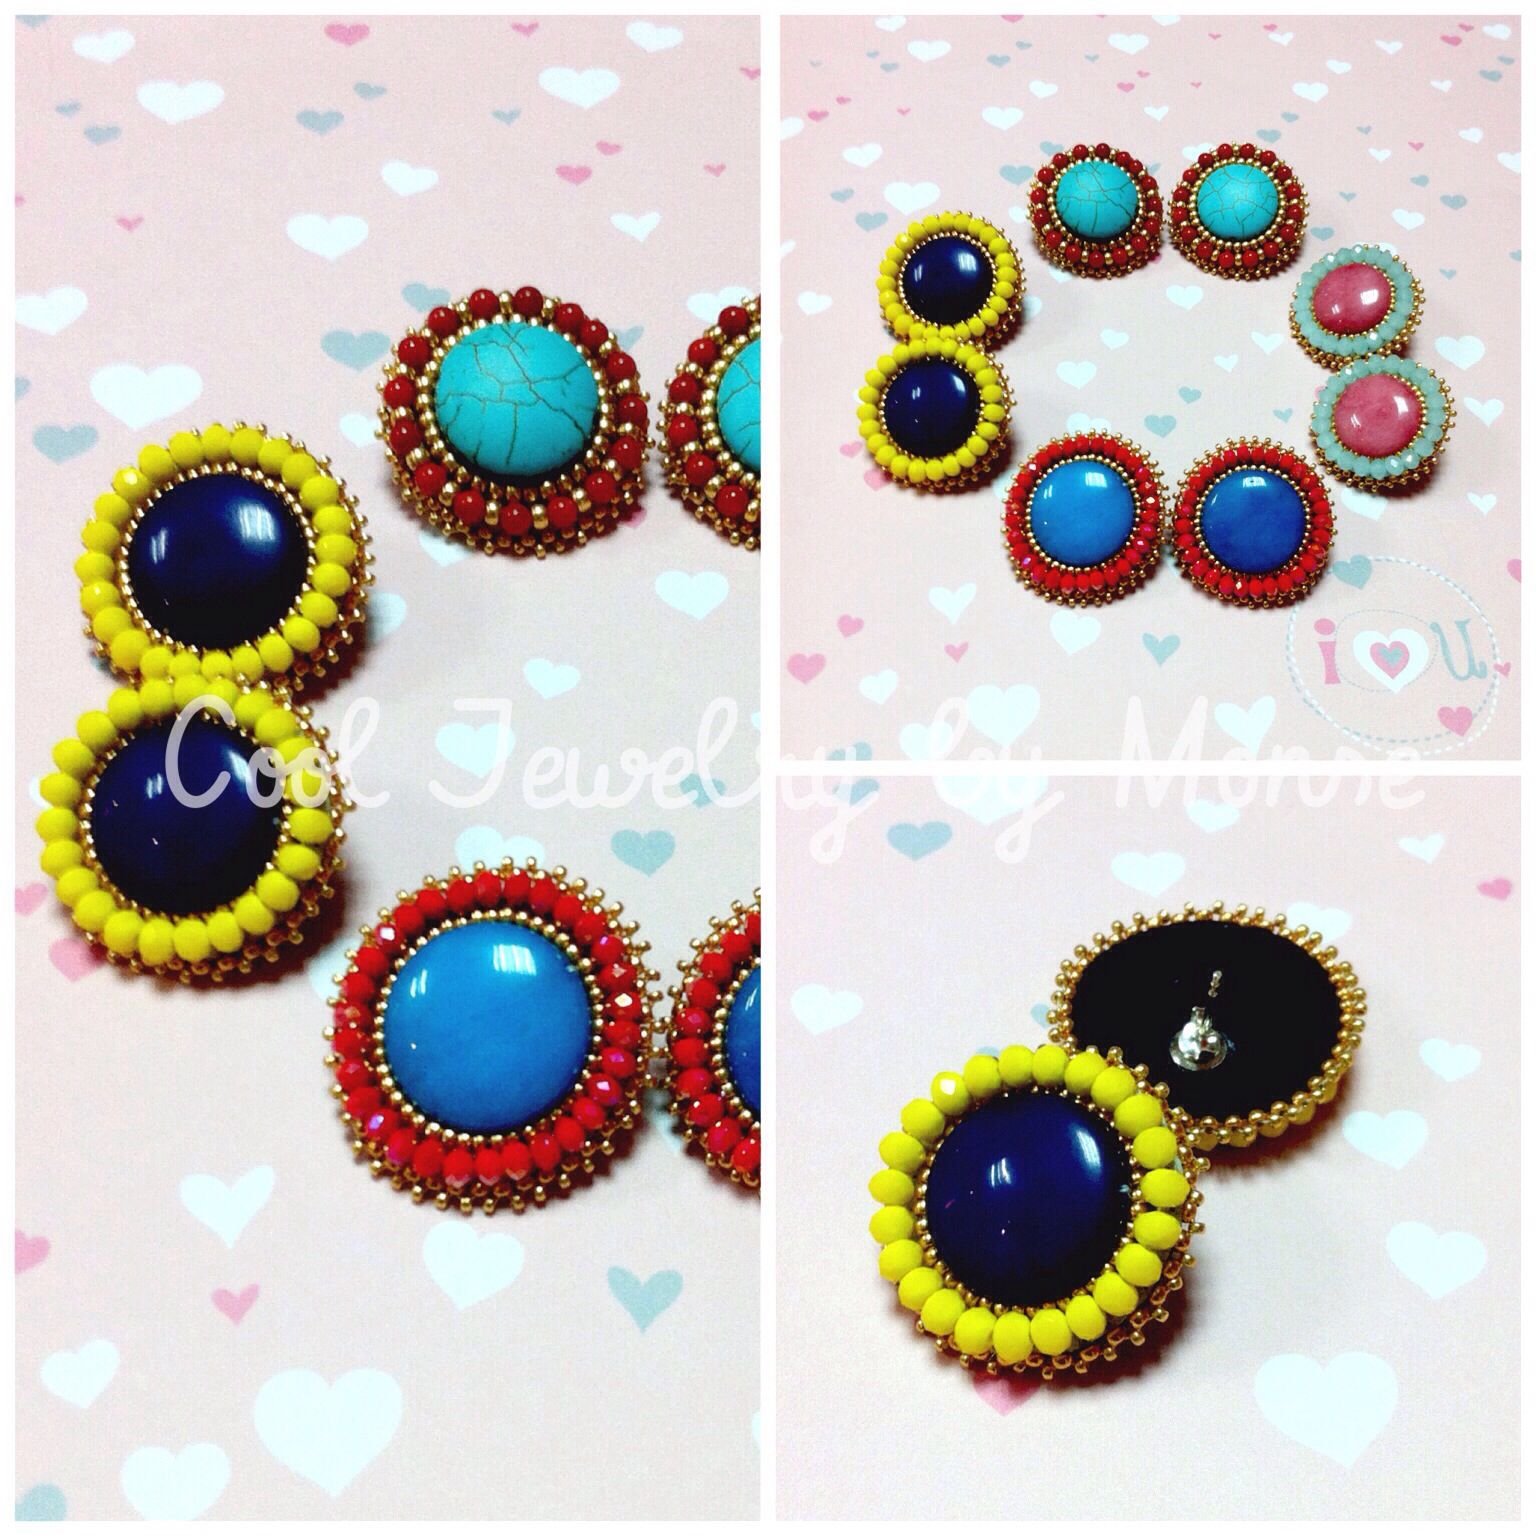 Handmade earrings!